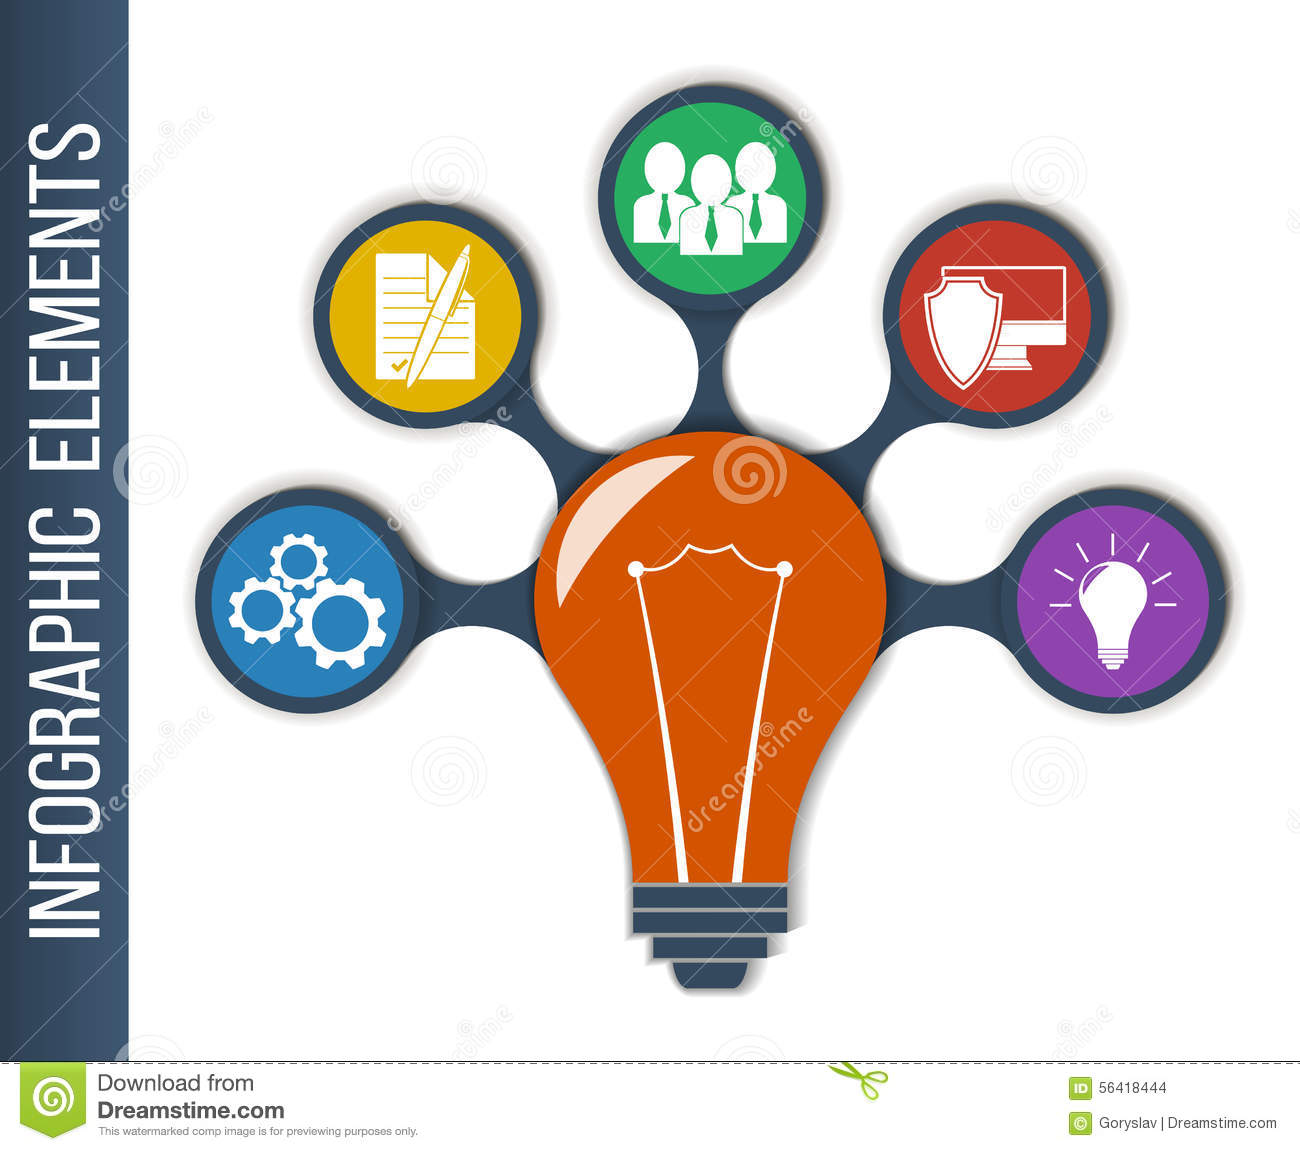 Business Finance Idea Concept Layout For Teamwork And